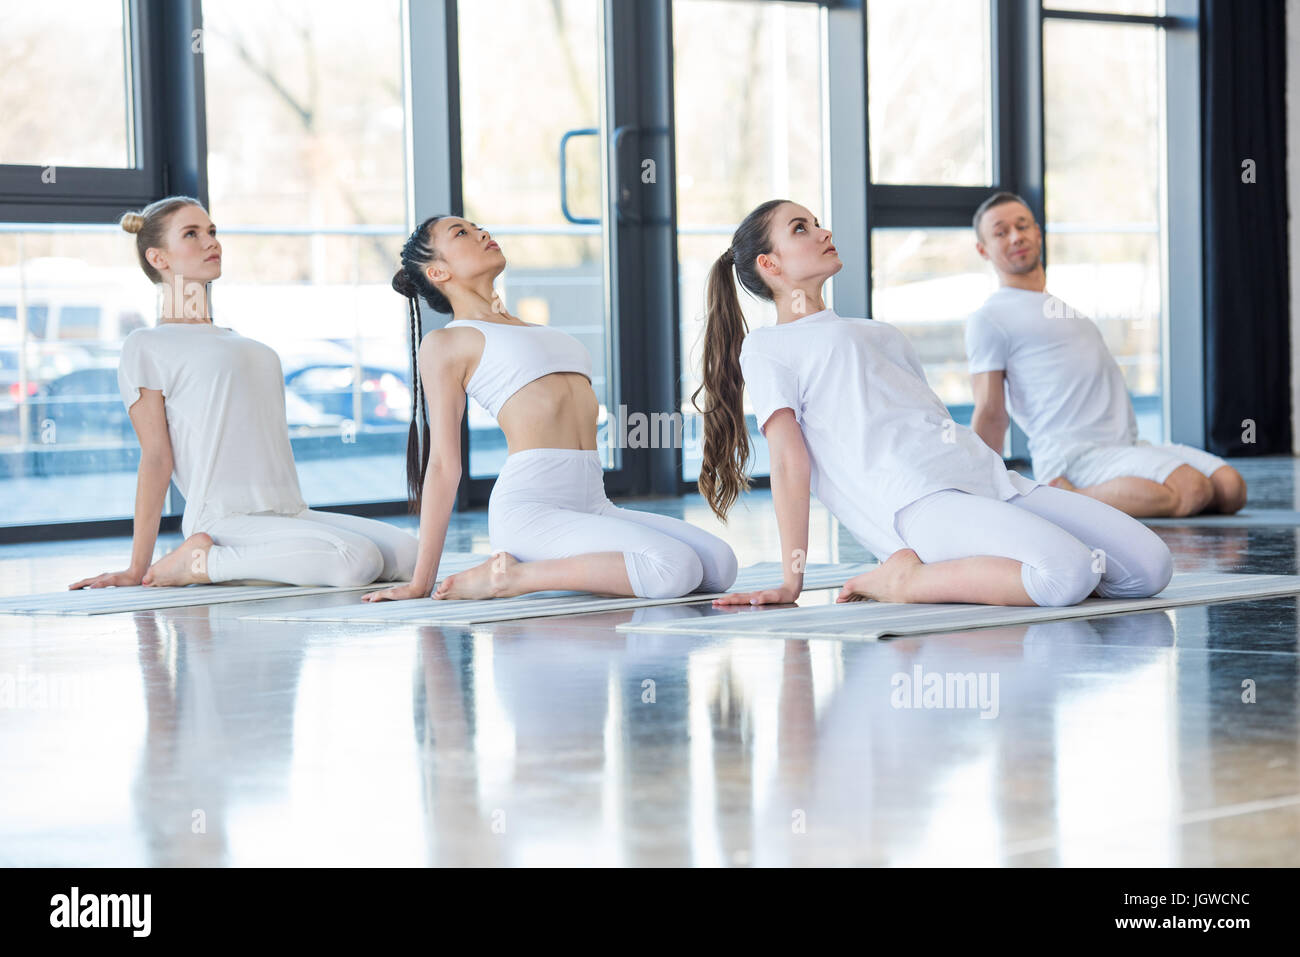 side view of group of women practicing yoga on mats together with trainer - Stock Image